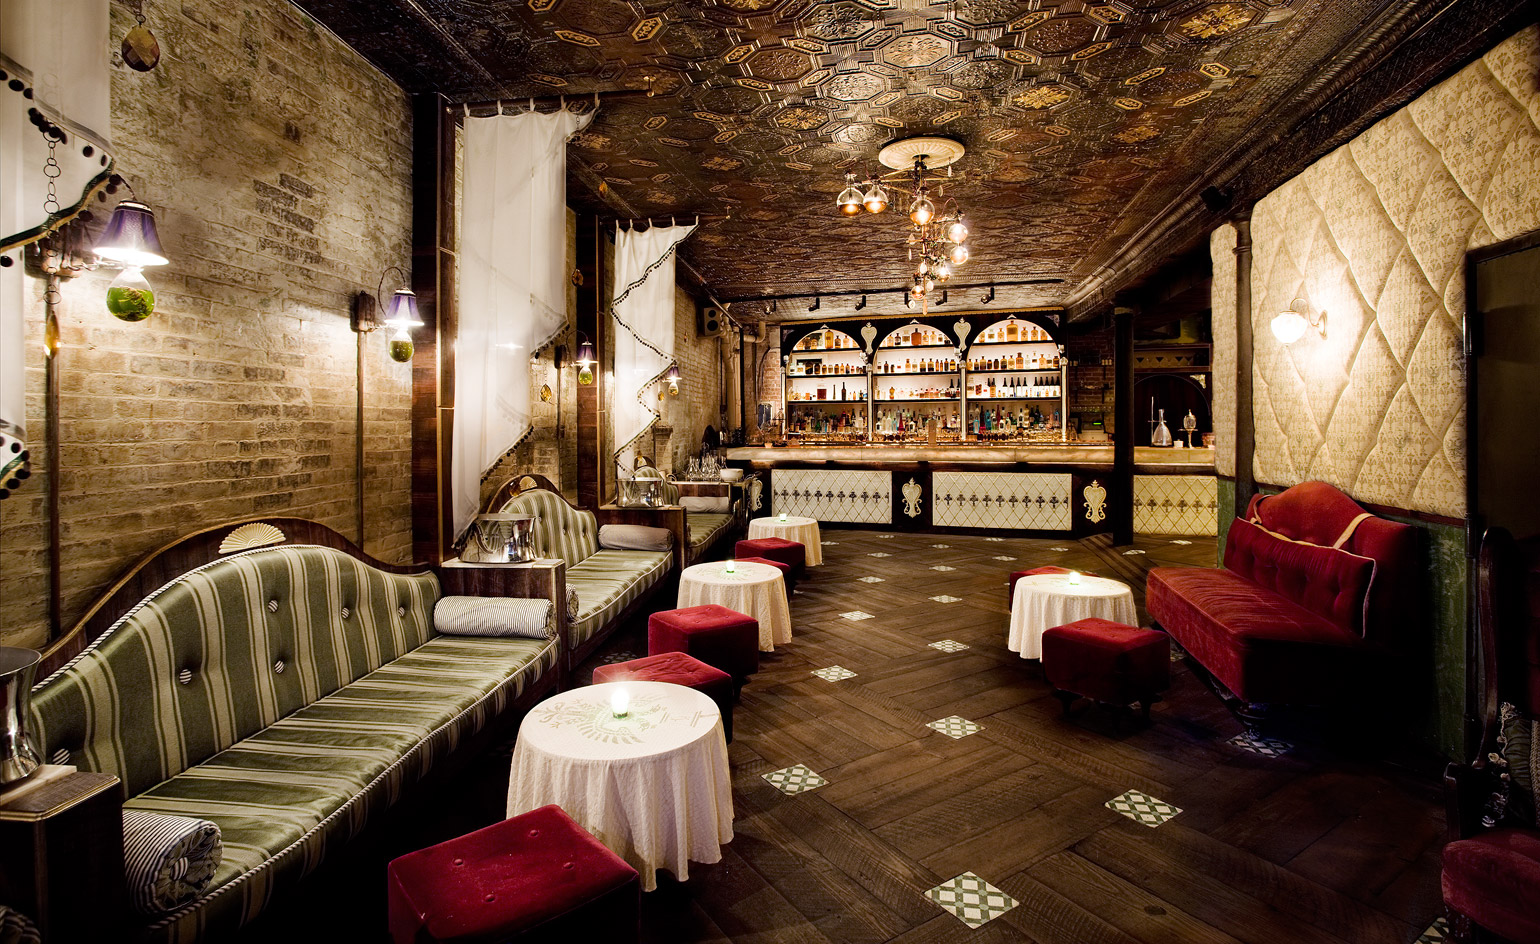 The 13 best nyc hidden bars and secret speakeasies for Hotel design secret